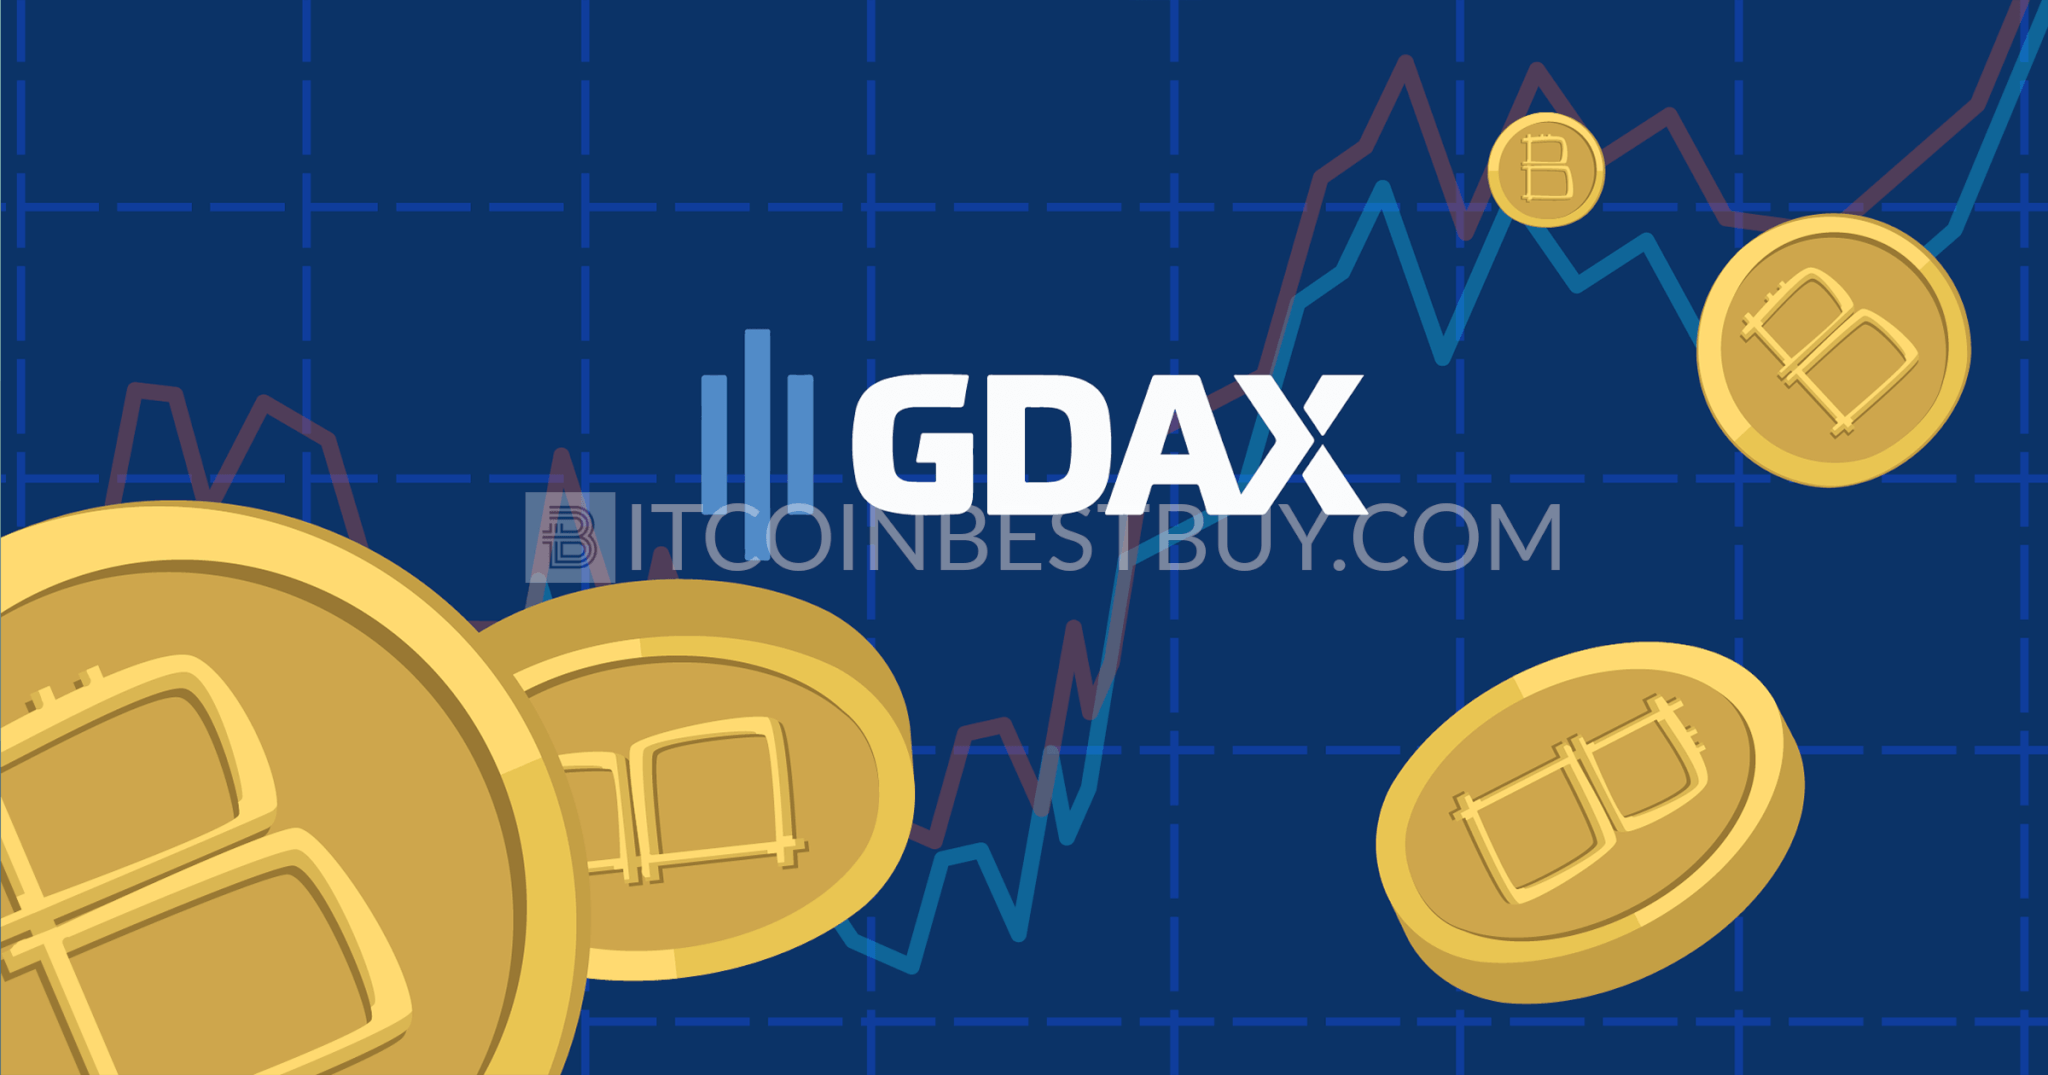 Review GDAX bitcoin exchange